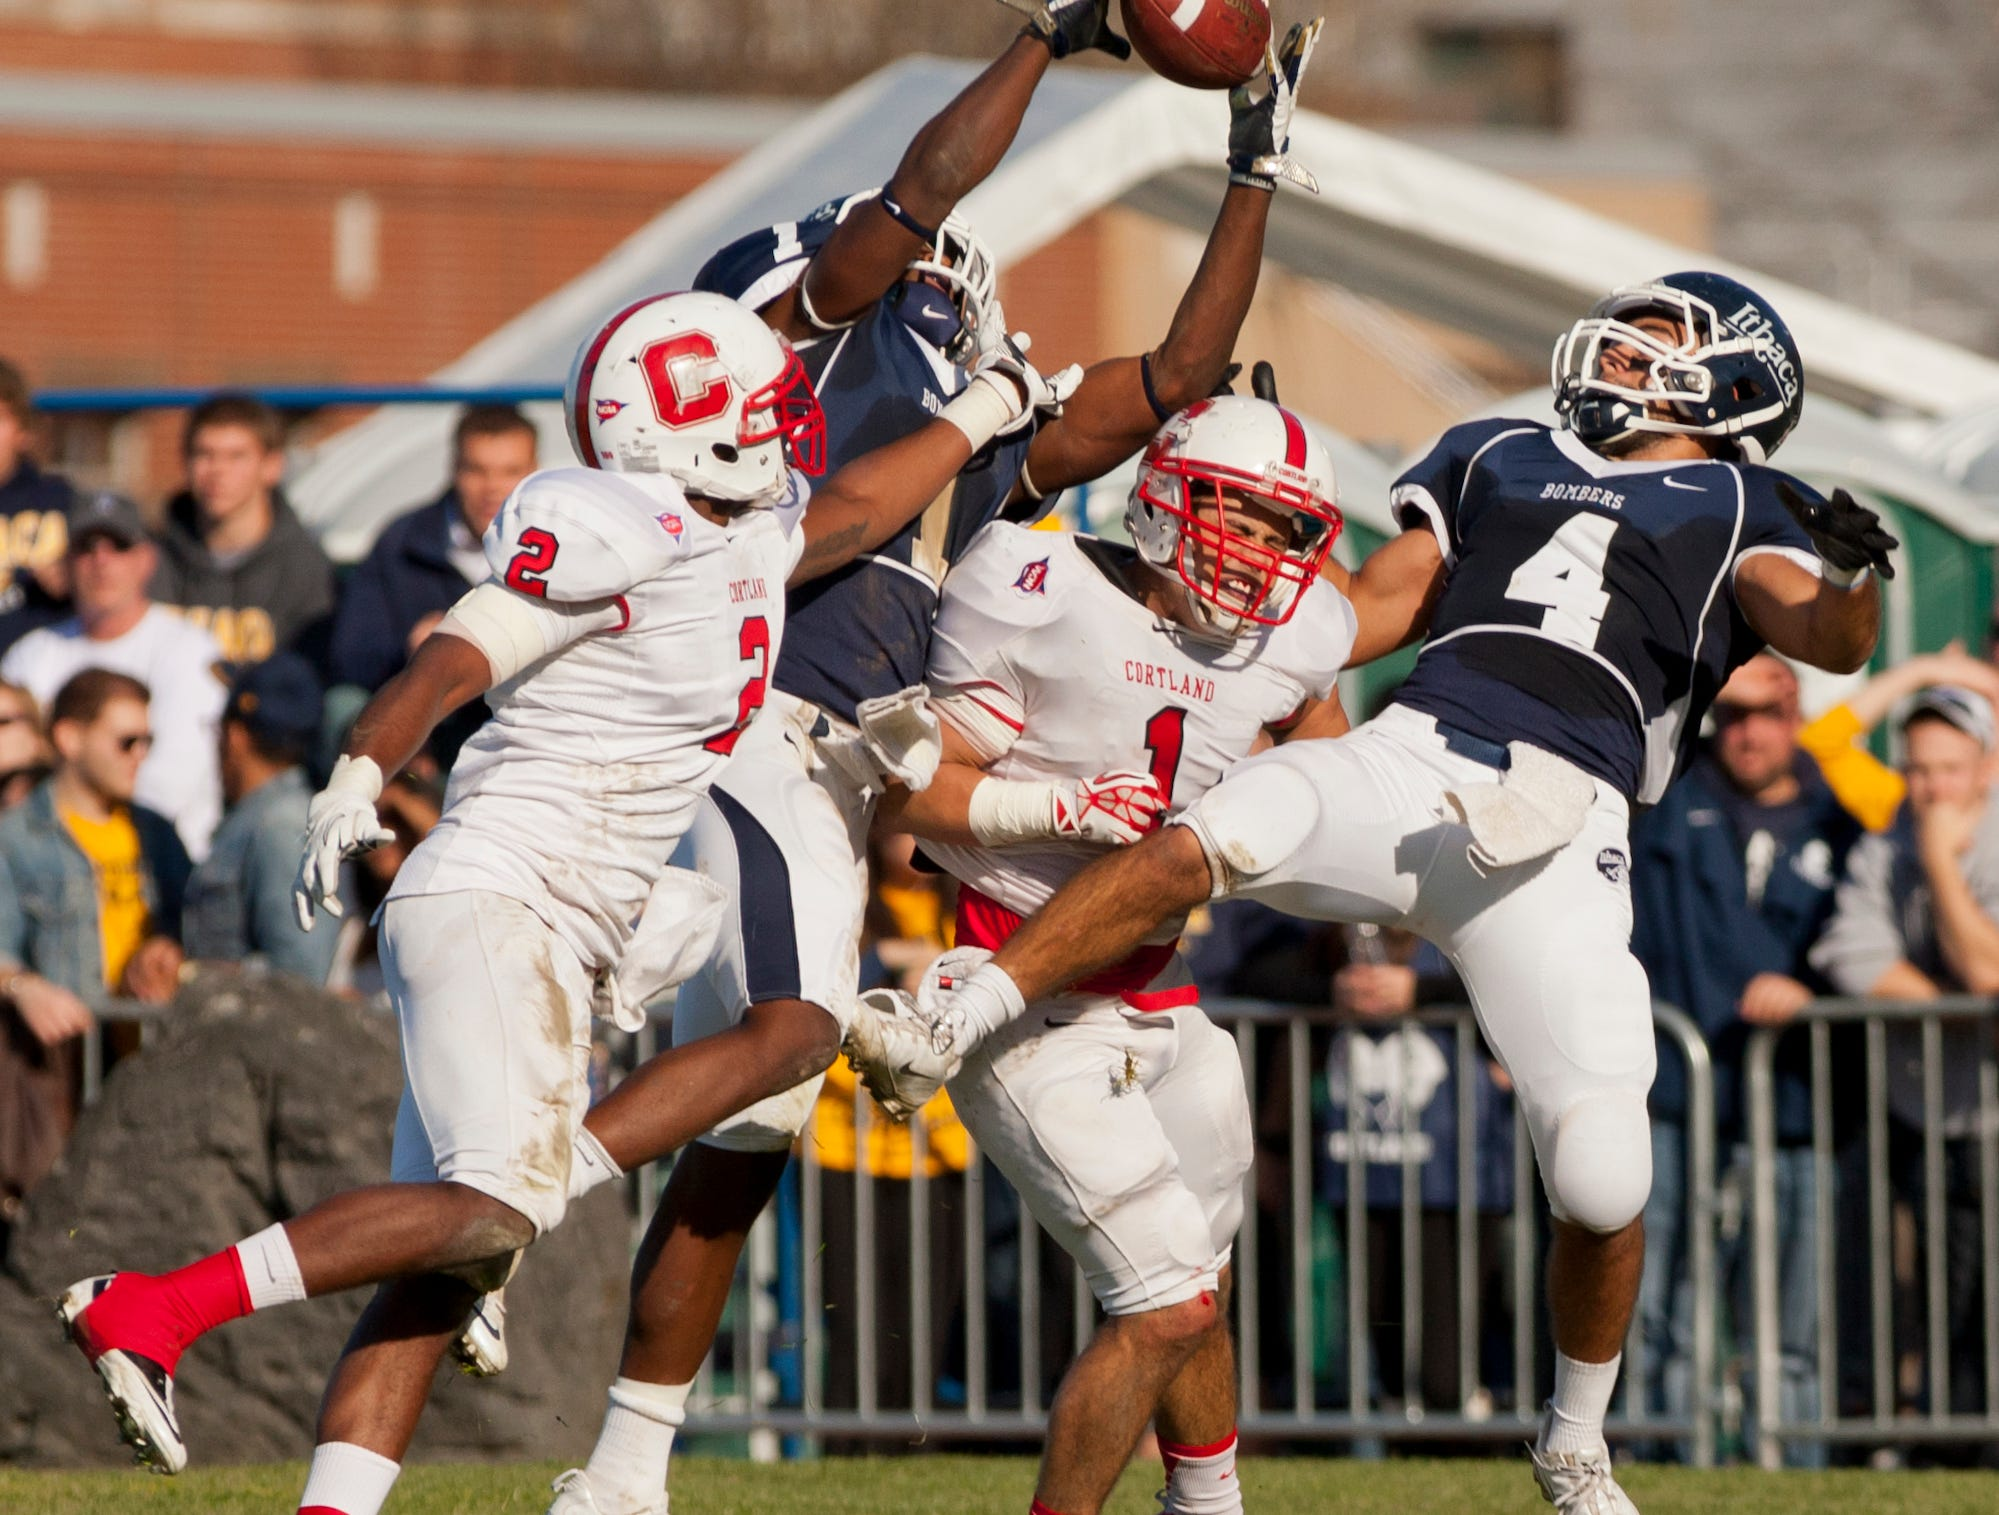 2013: From left Cortland's Ke'shaun Stallworth defends as Ithaca's Joel Lynch tries of hang on to a pass in the end zone as time expires in the second quarter with Cortland's Andrew Tolosi and Ithaca's Vito Boffoli, also battling for position under the 42 yard pass attemptSaturday afternoon during the annual Cortaca Jug game at Butterfield Stadium at Ithaca College. L